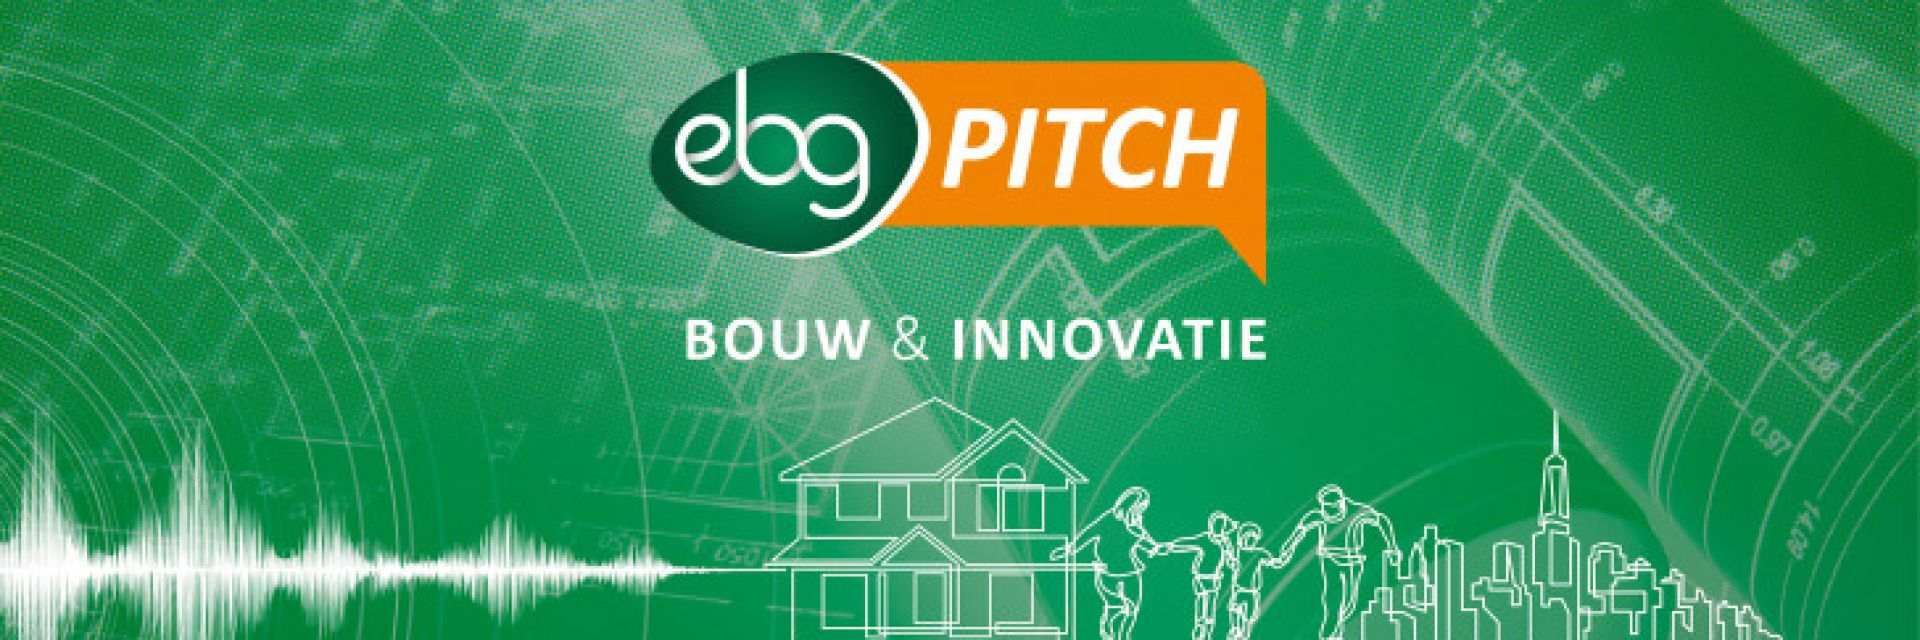 EBG Pitch - Building and Innovation